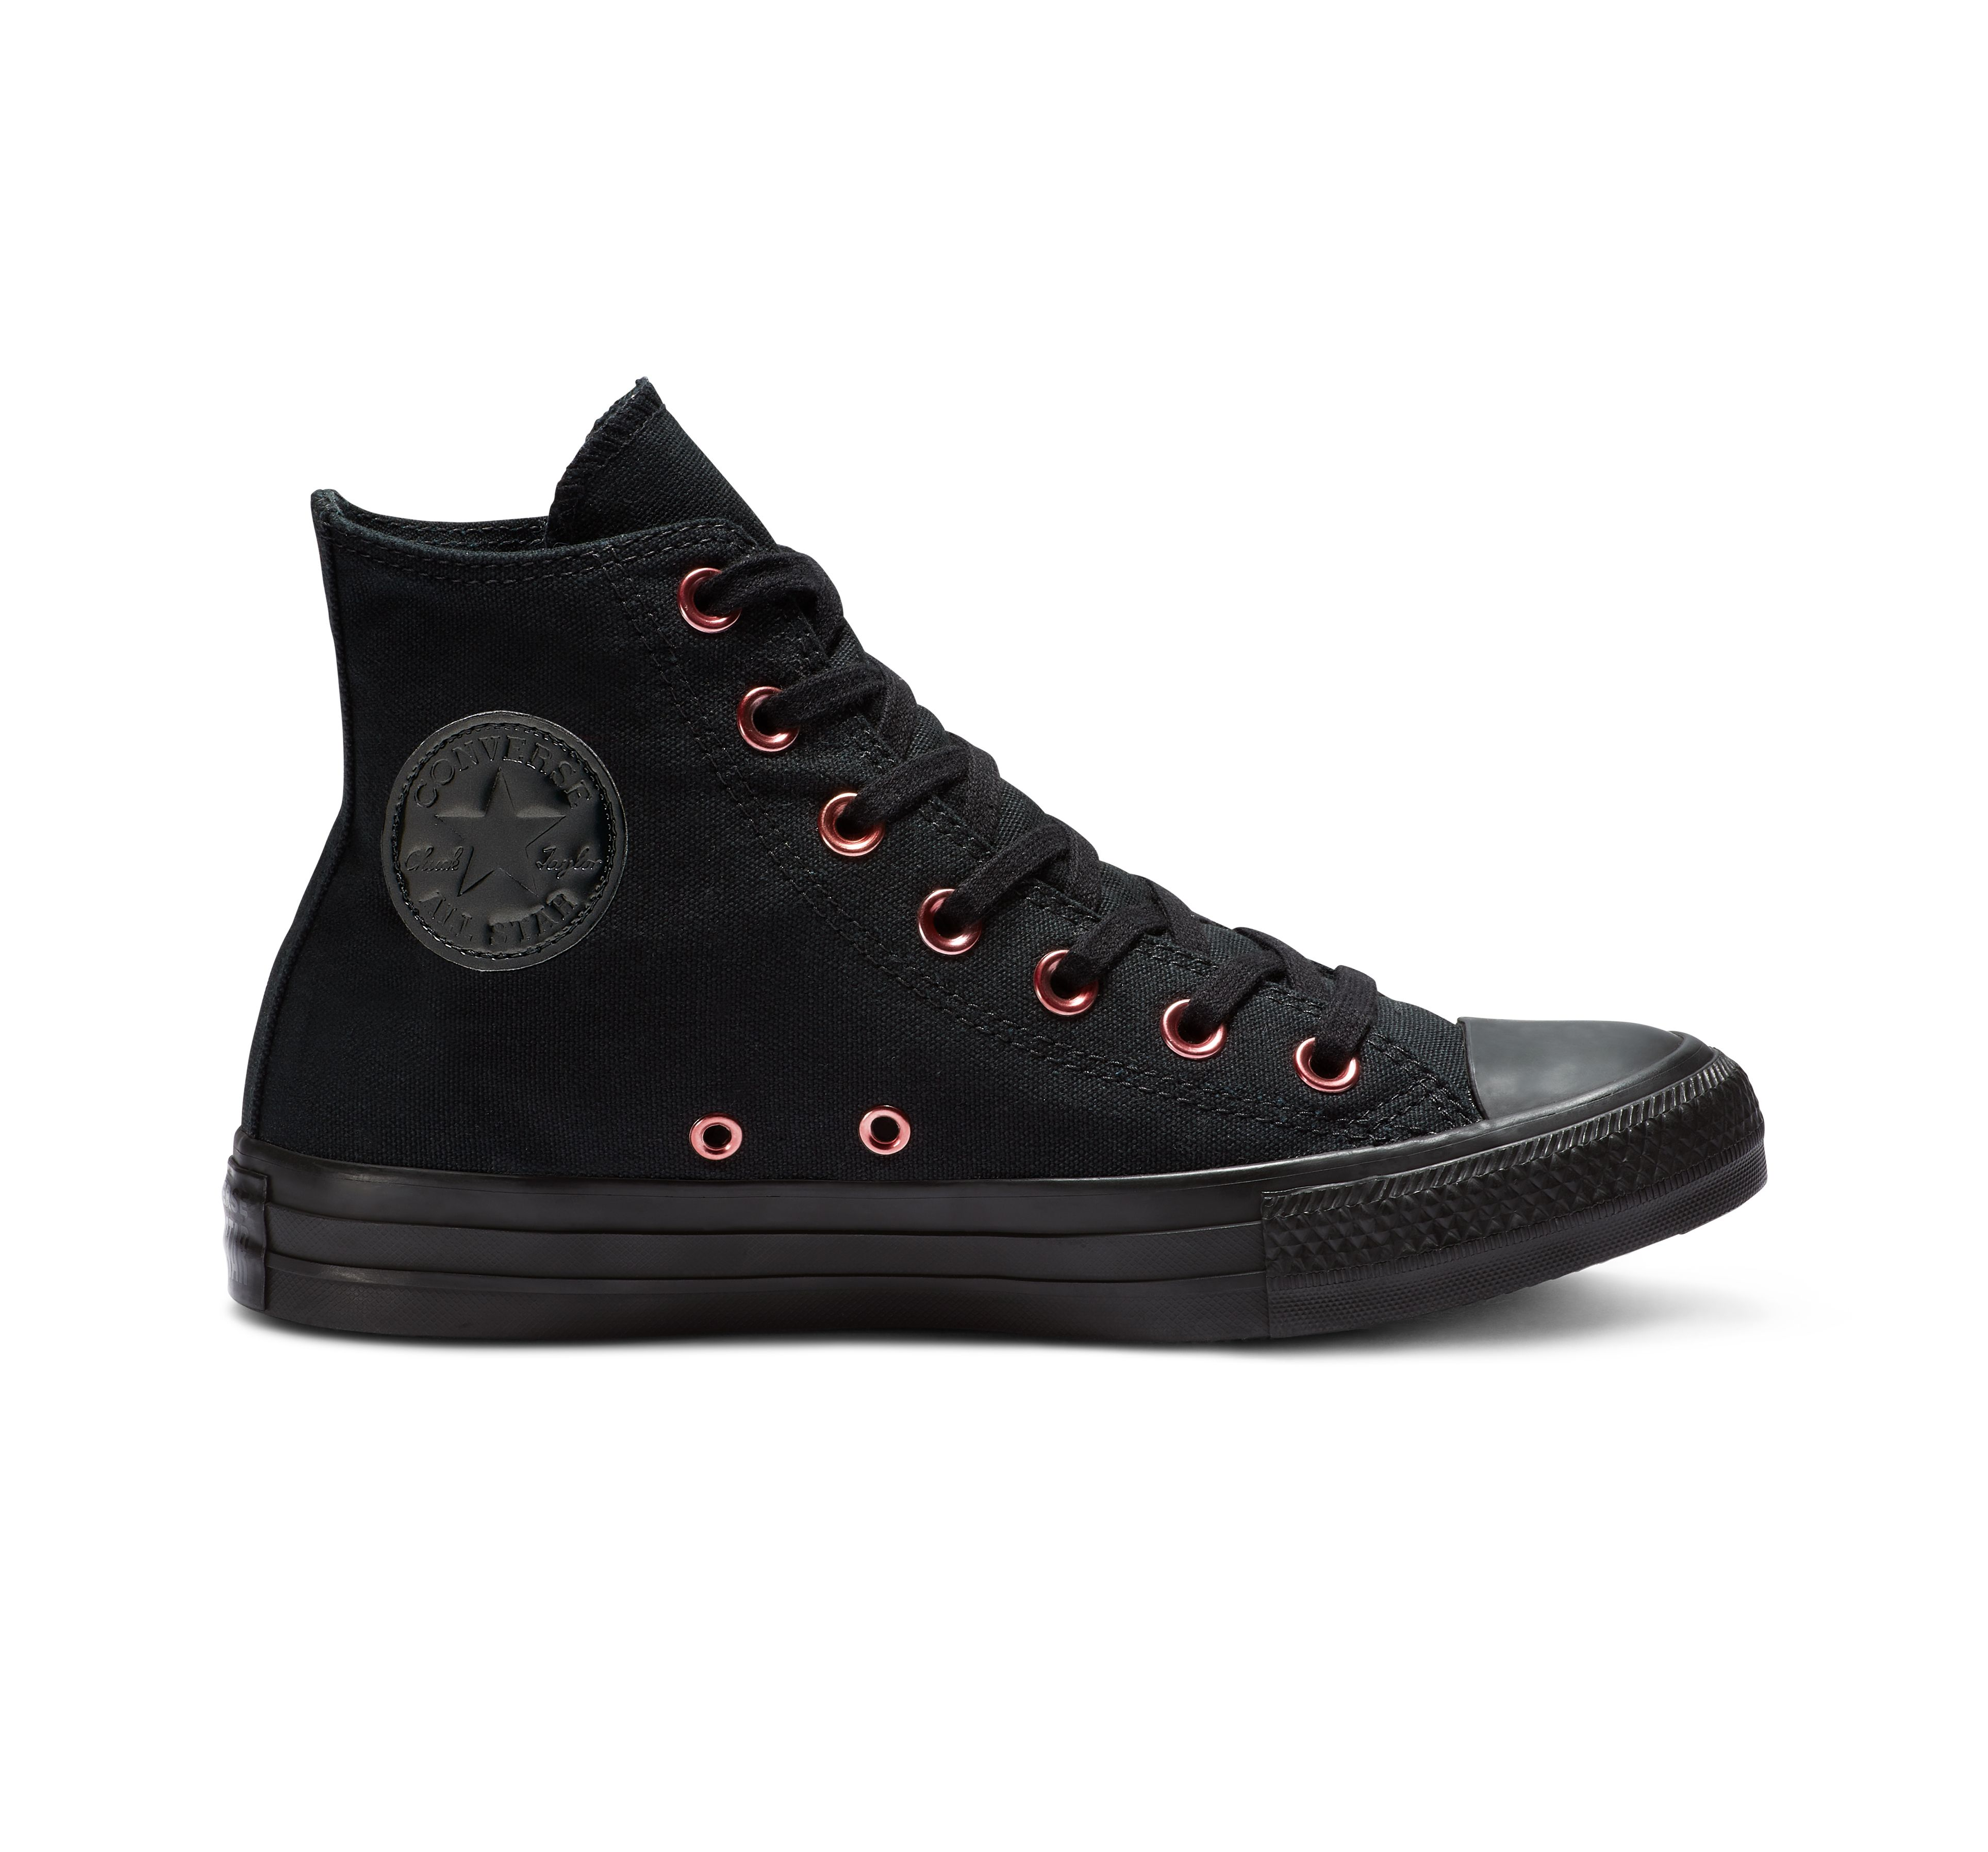 Converse Chuck Taylor All Star Hearts High Top